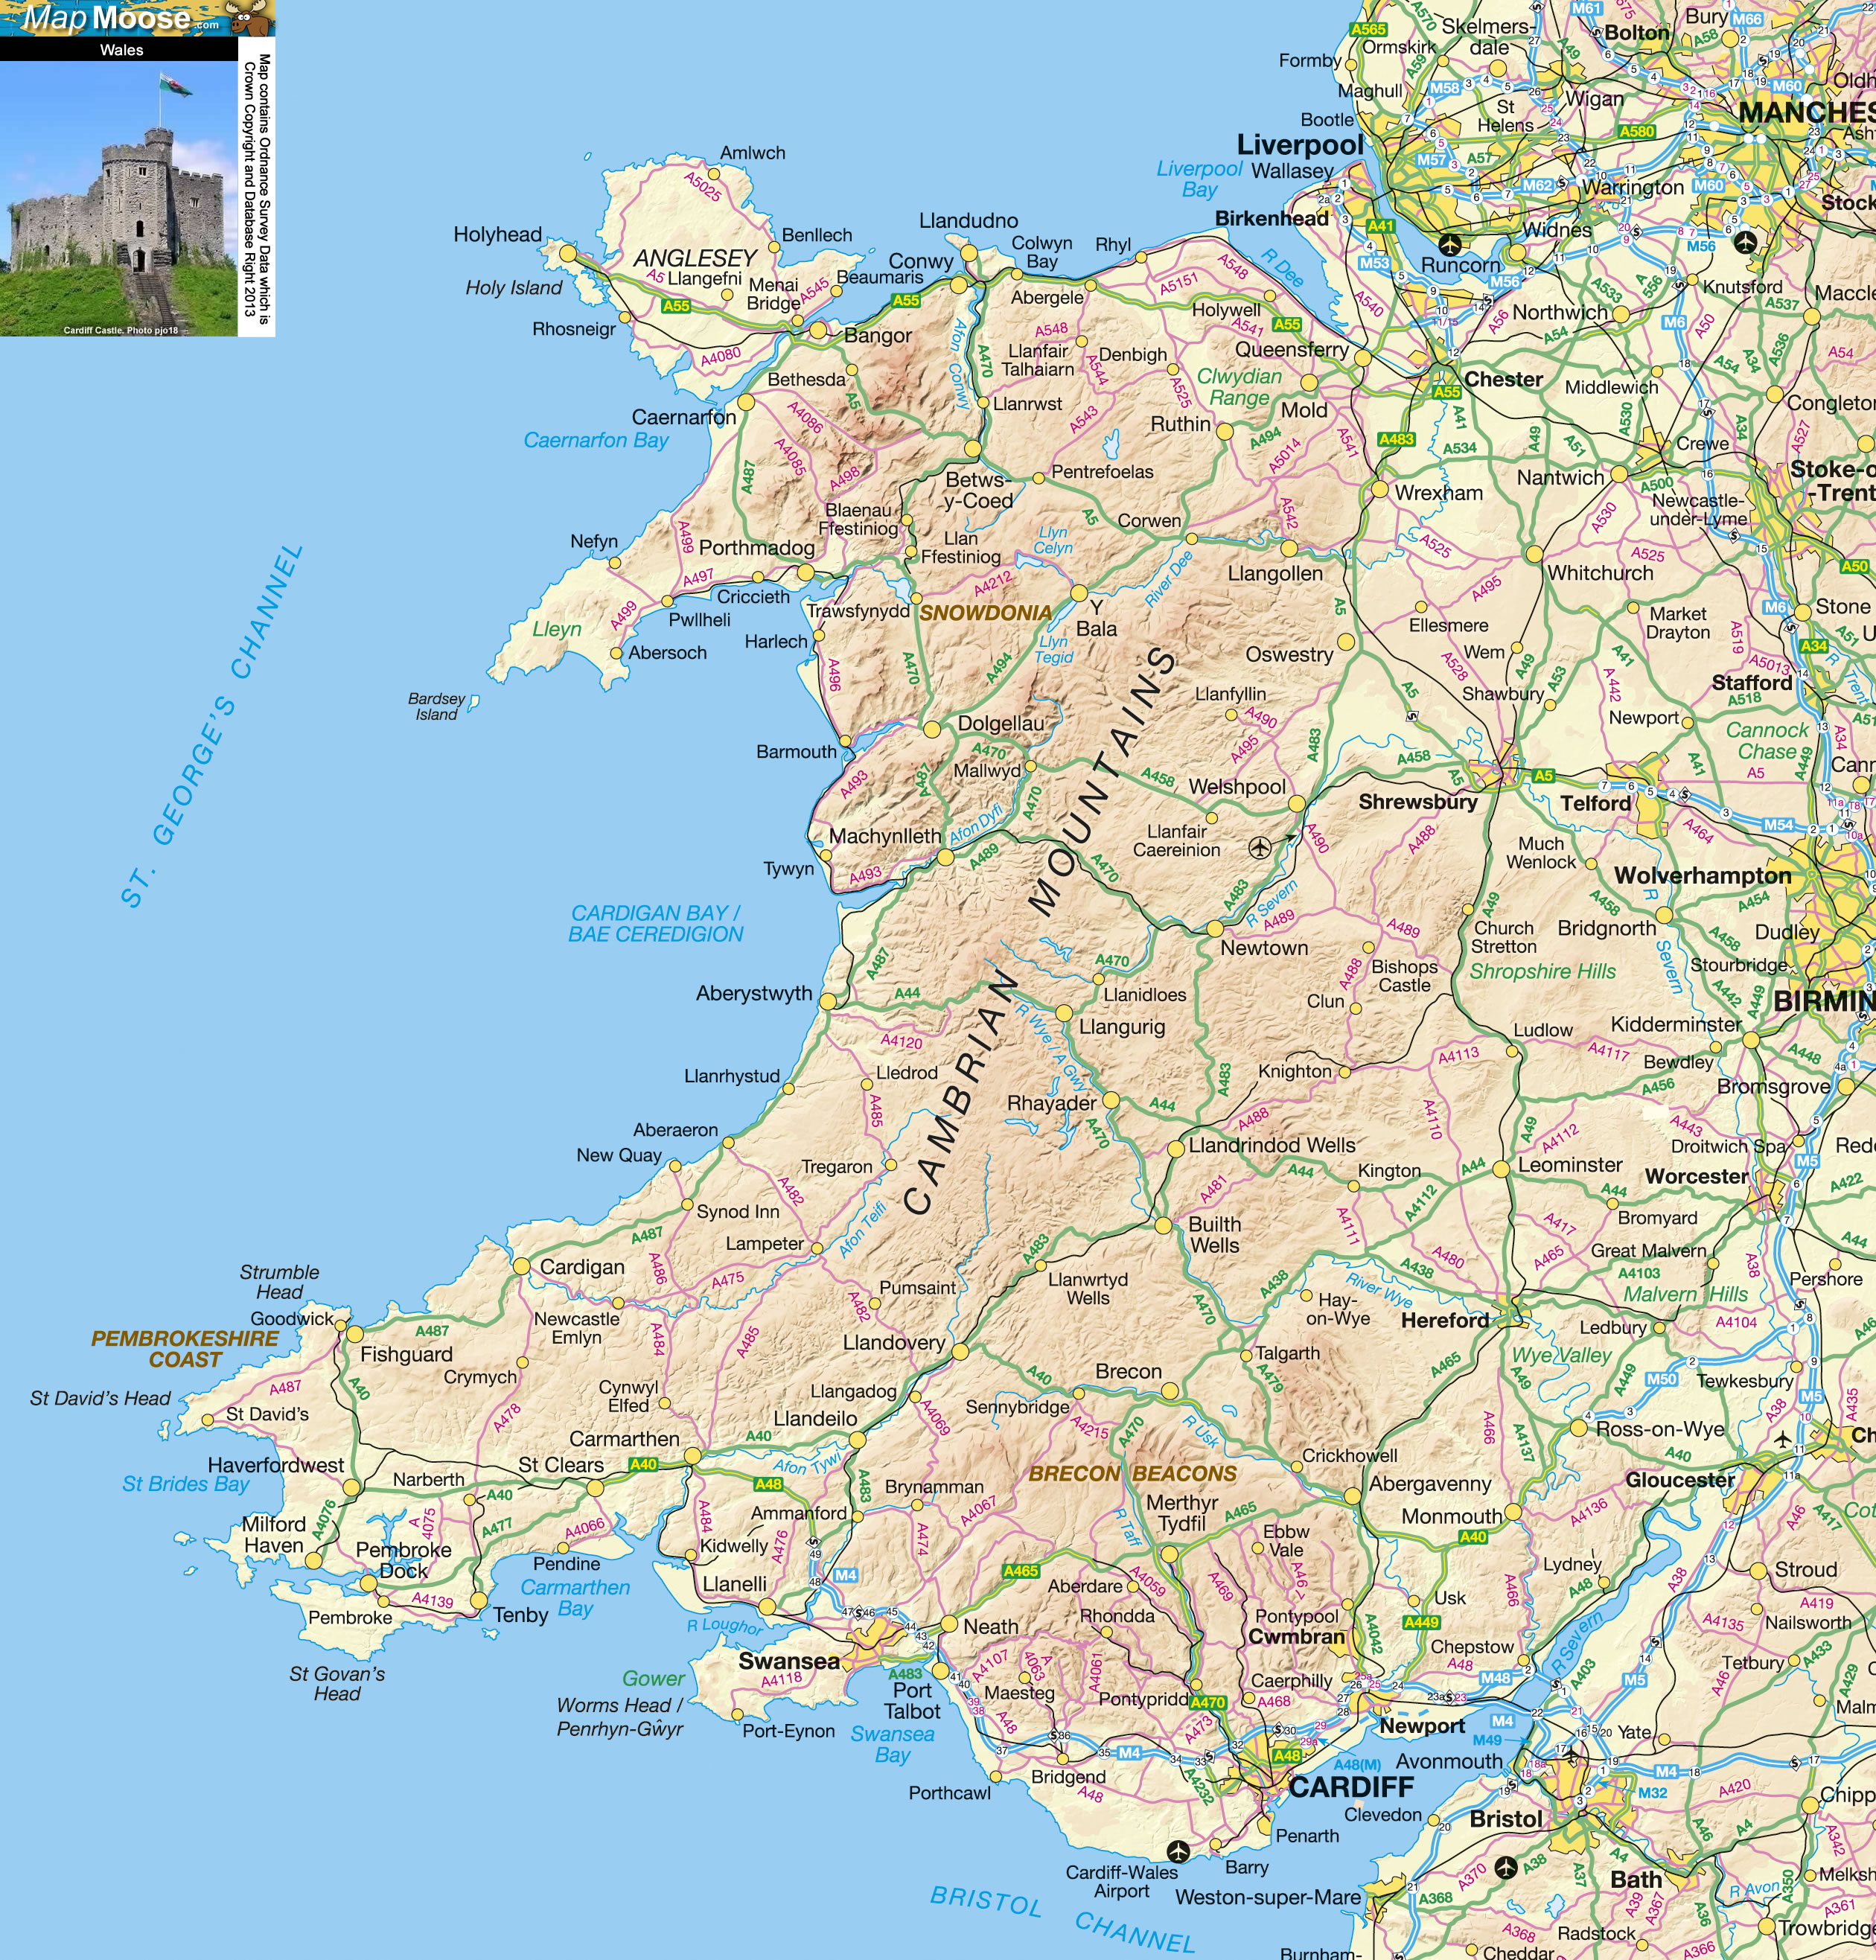 Wales Offline Map including Anglesey Snowdonia Pembrokeshire and